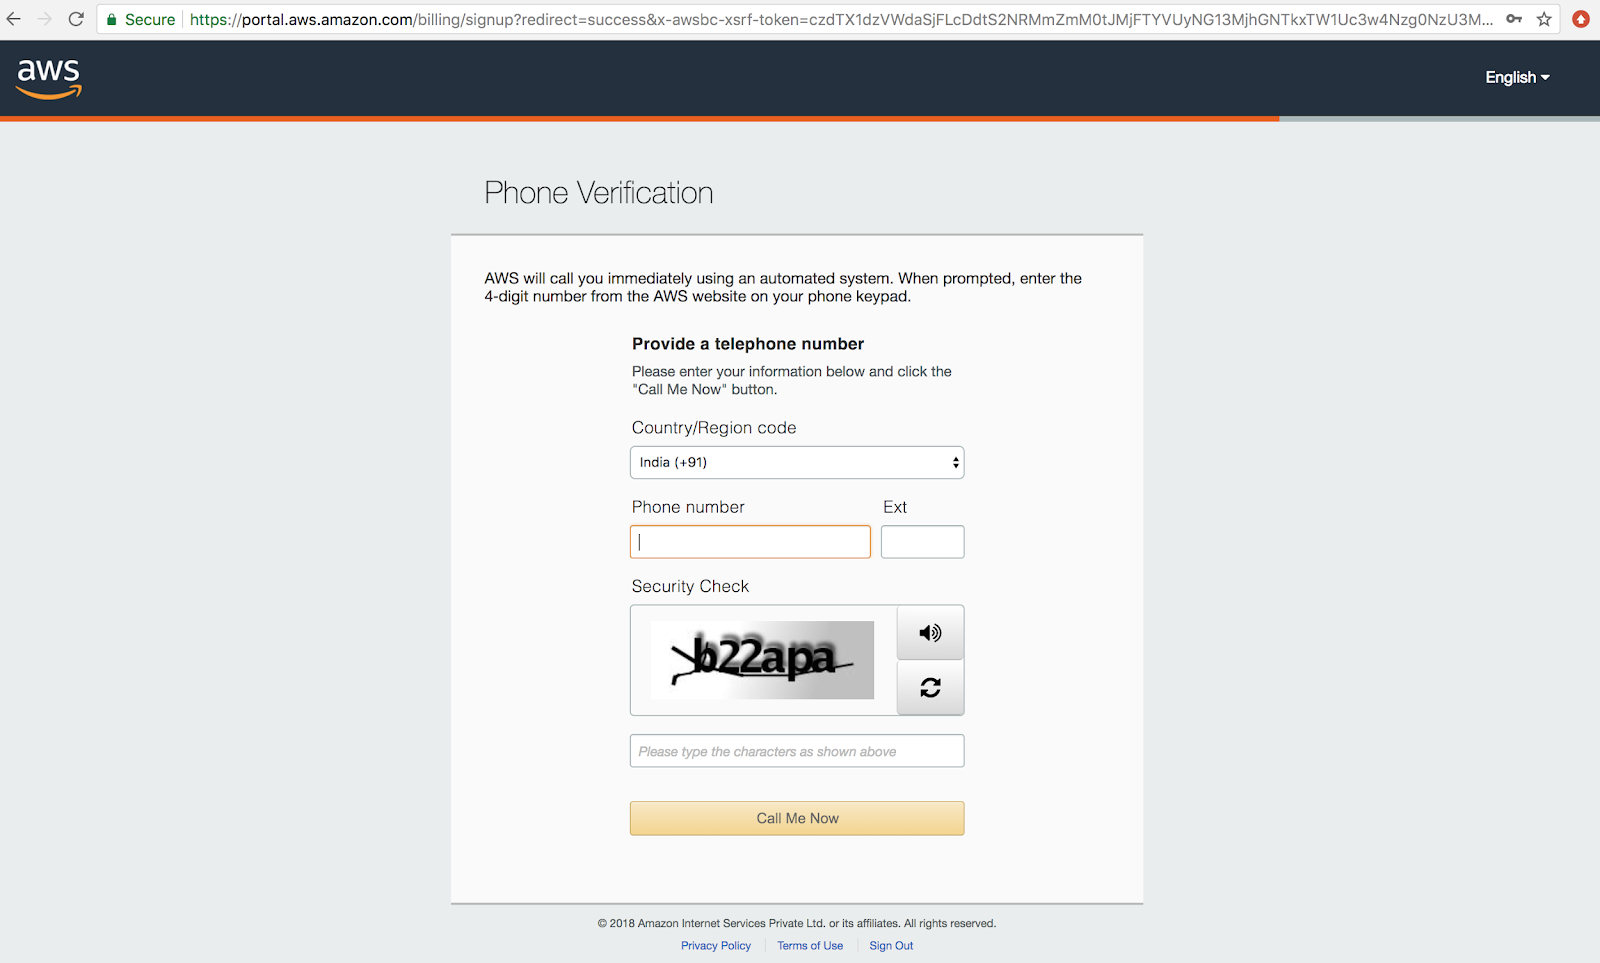 5. Phone Verification